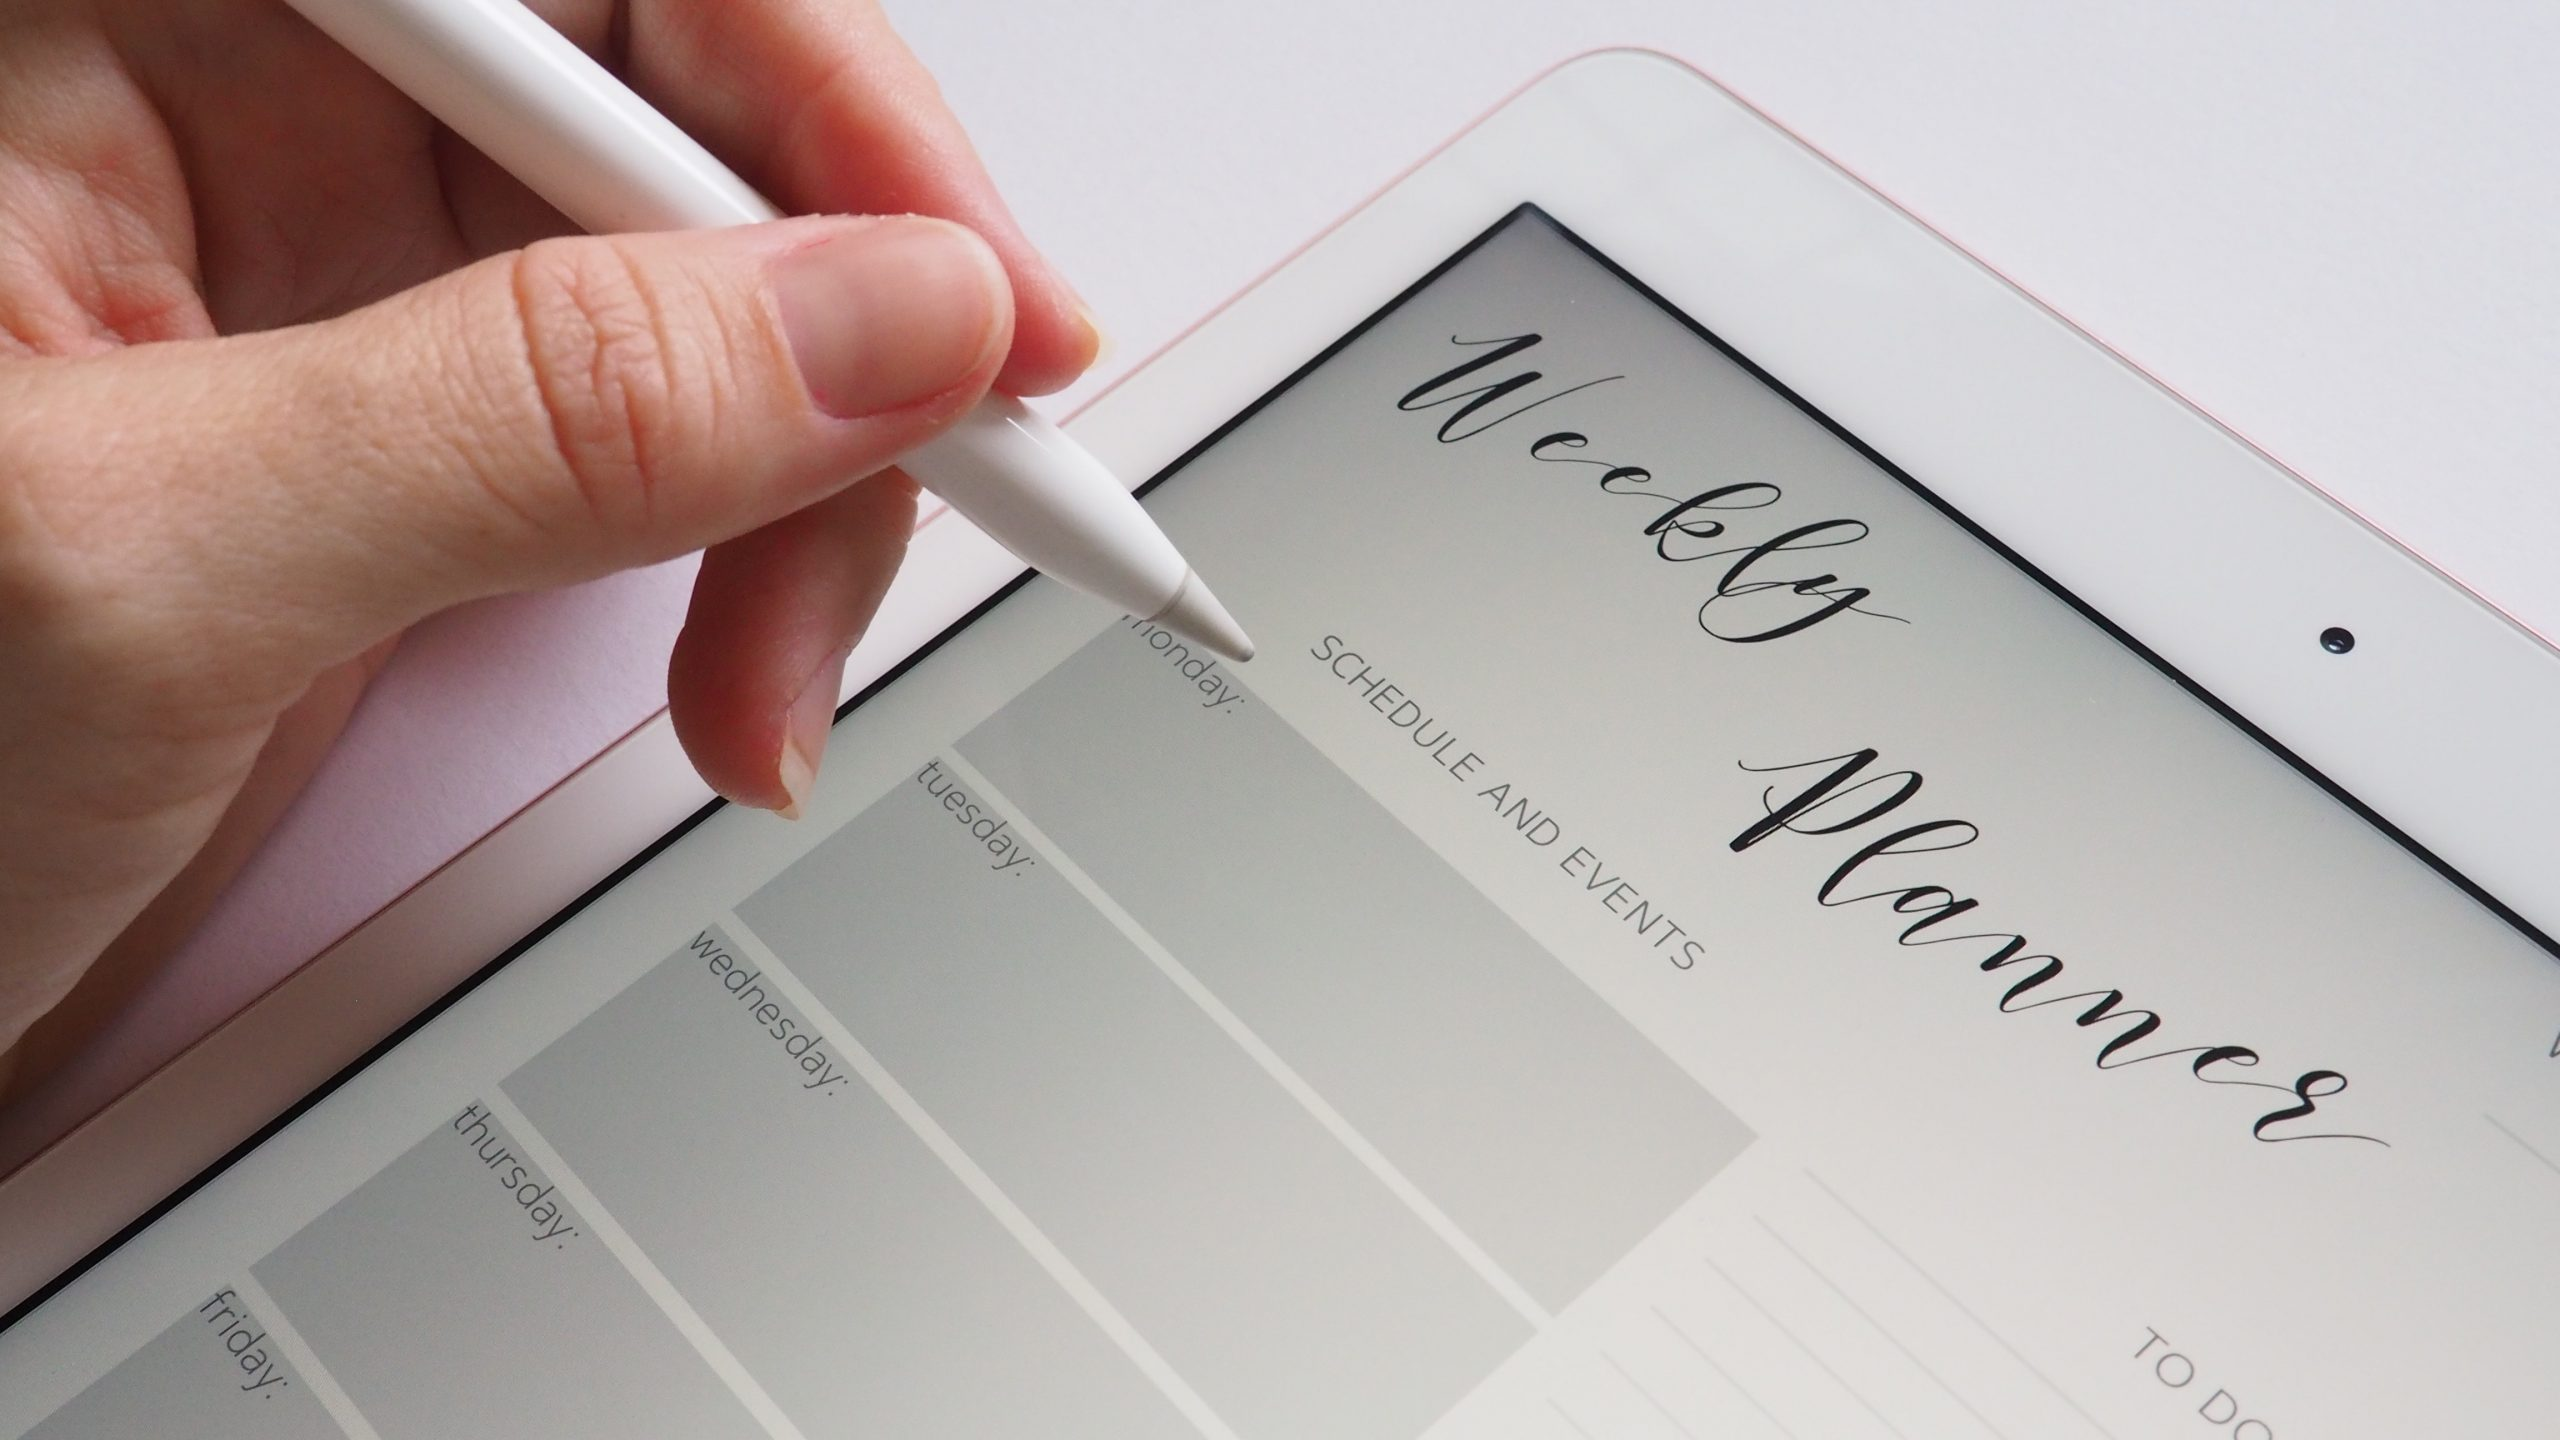 Best Tablets for Taking Handwritten Notes